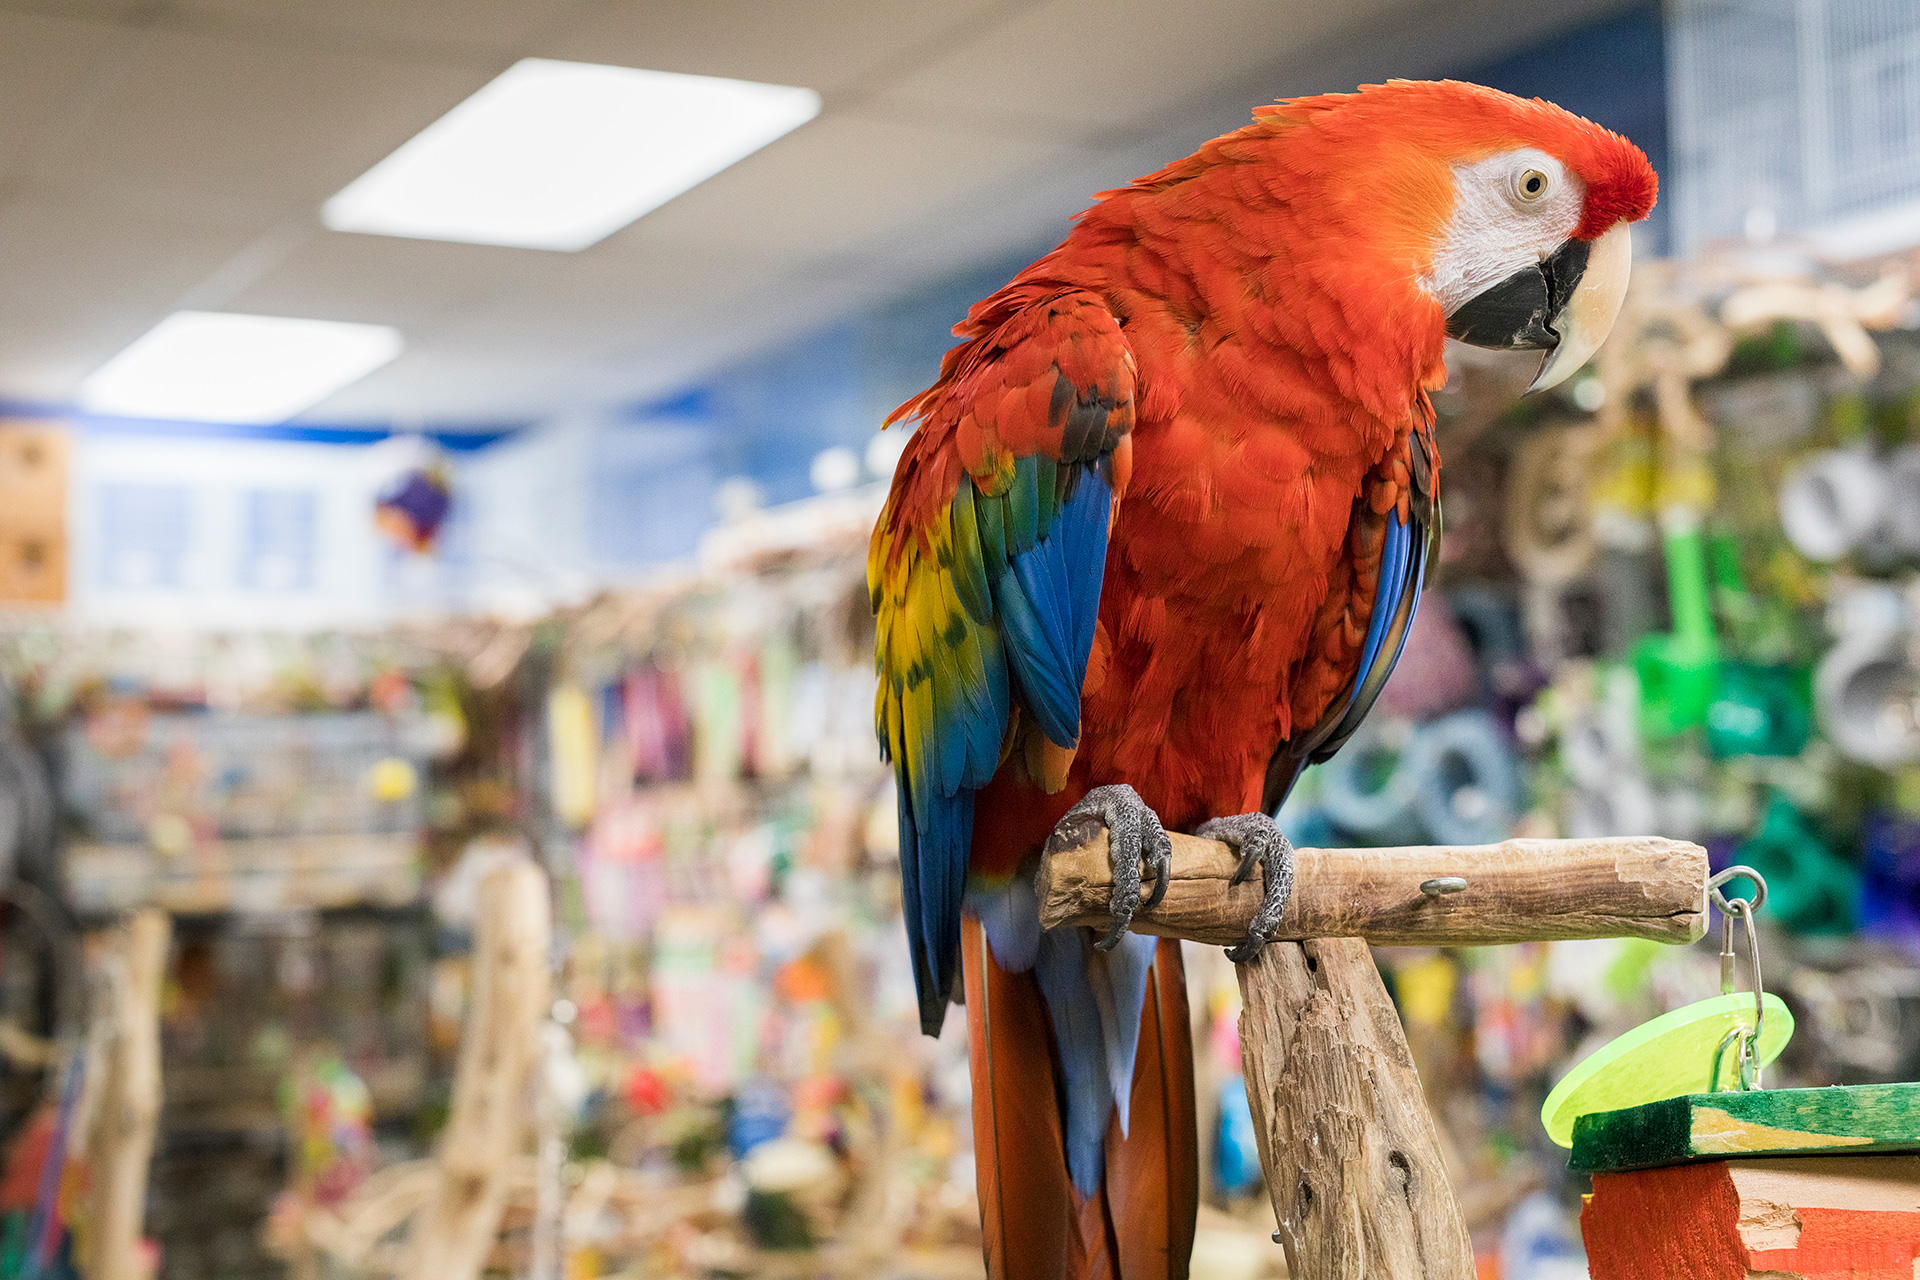 Animal Care - The Perfect Parrot